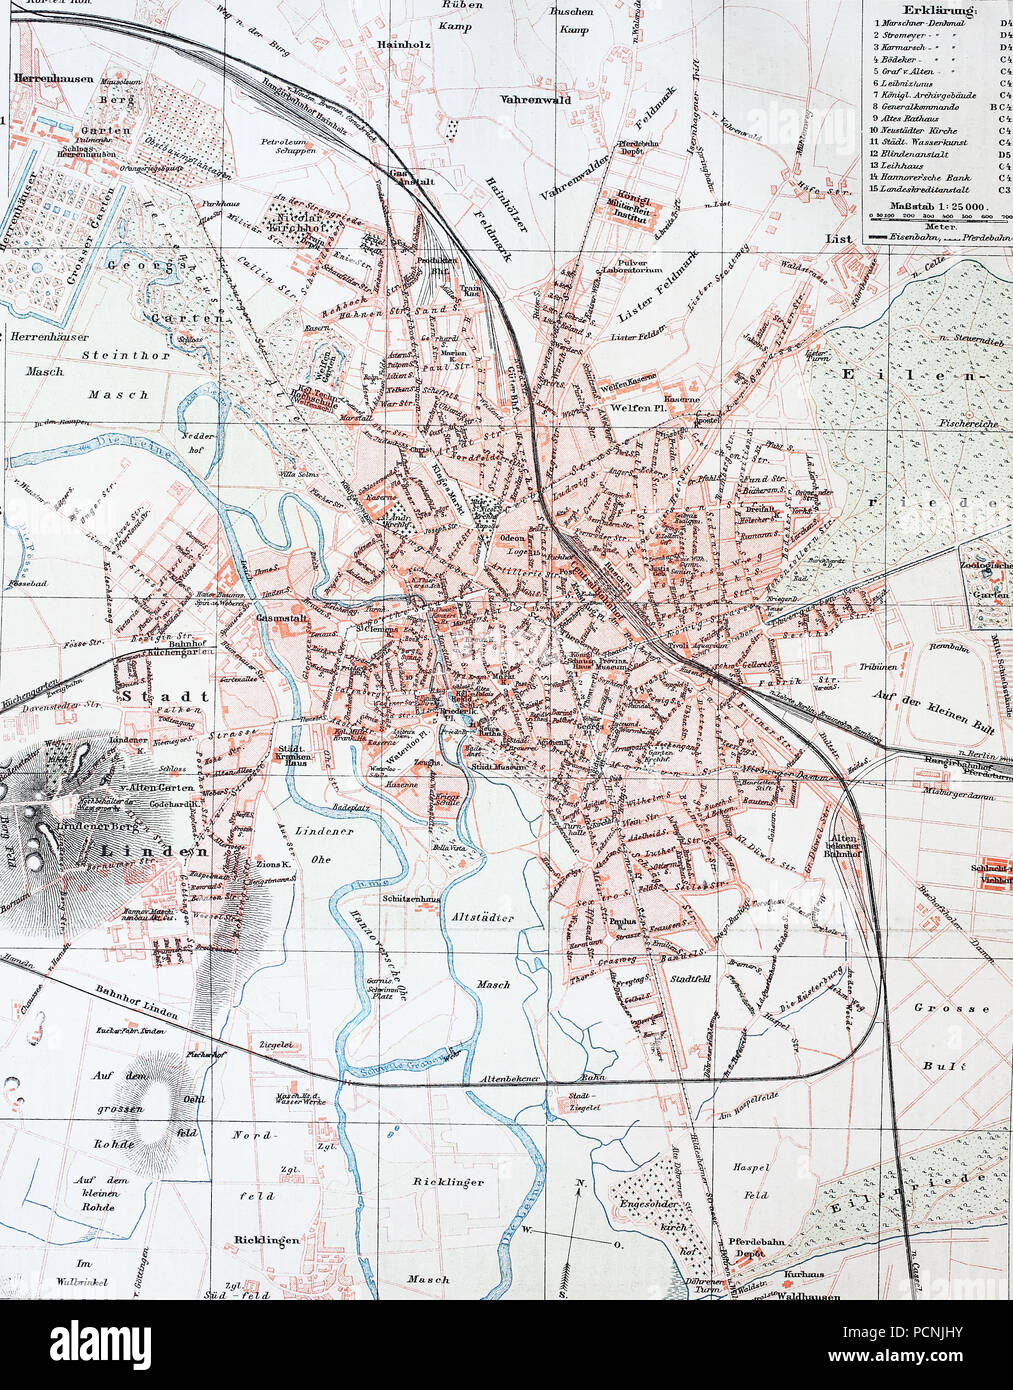 A Historical Map Of Hannover Germany Digital Improved